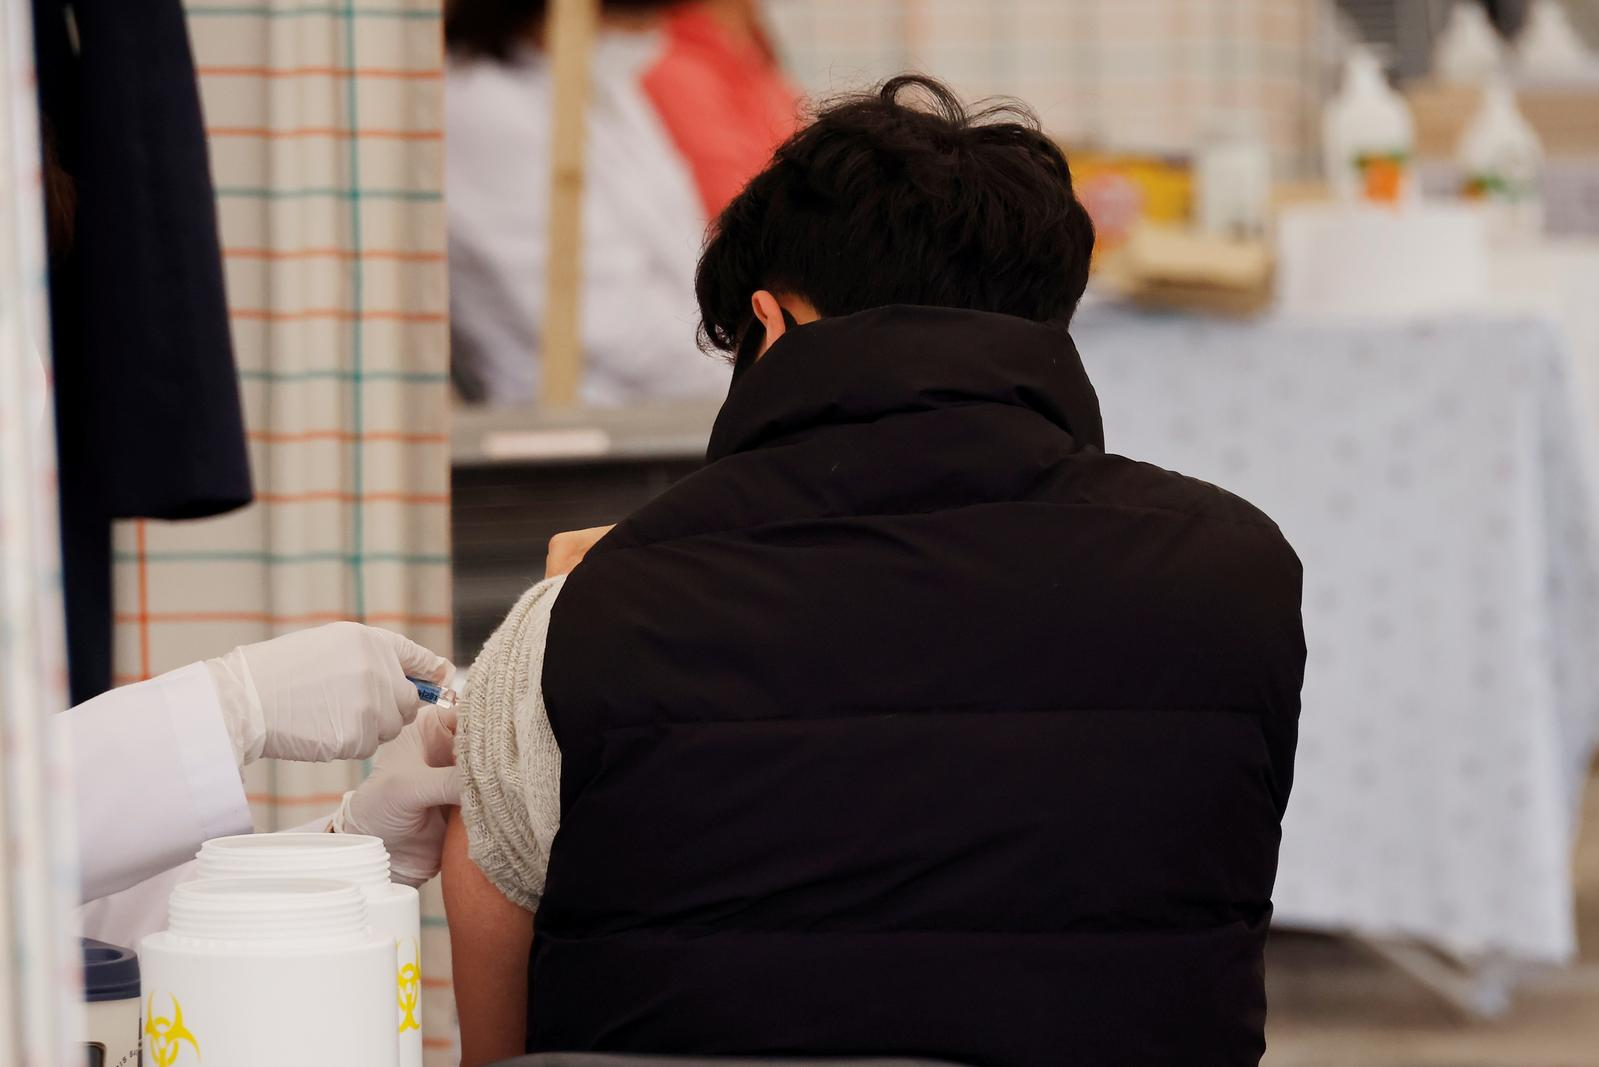 Deaths after flu shots in S.Korea fan fears, but authorities find no link